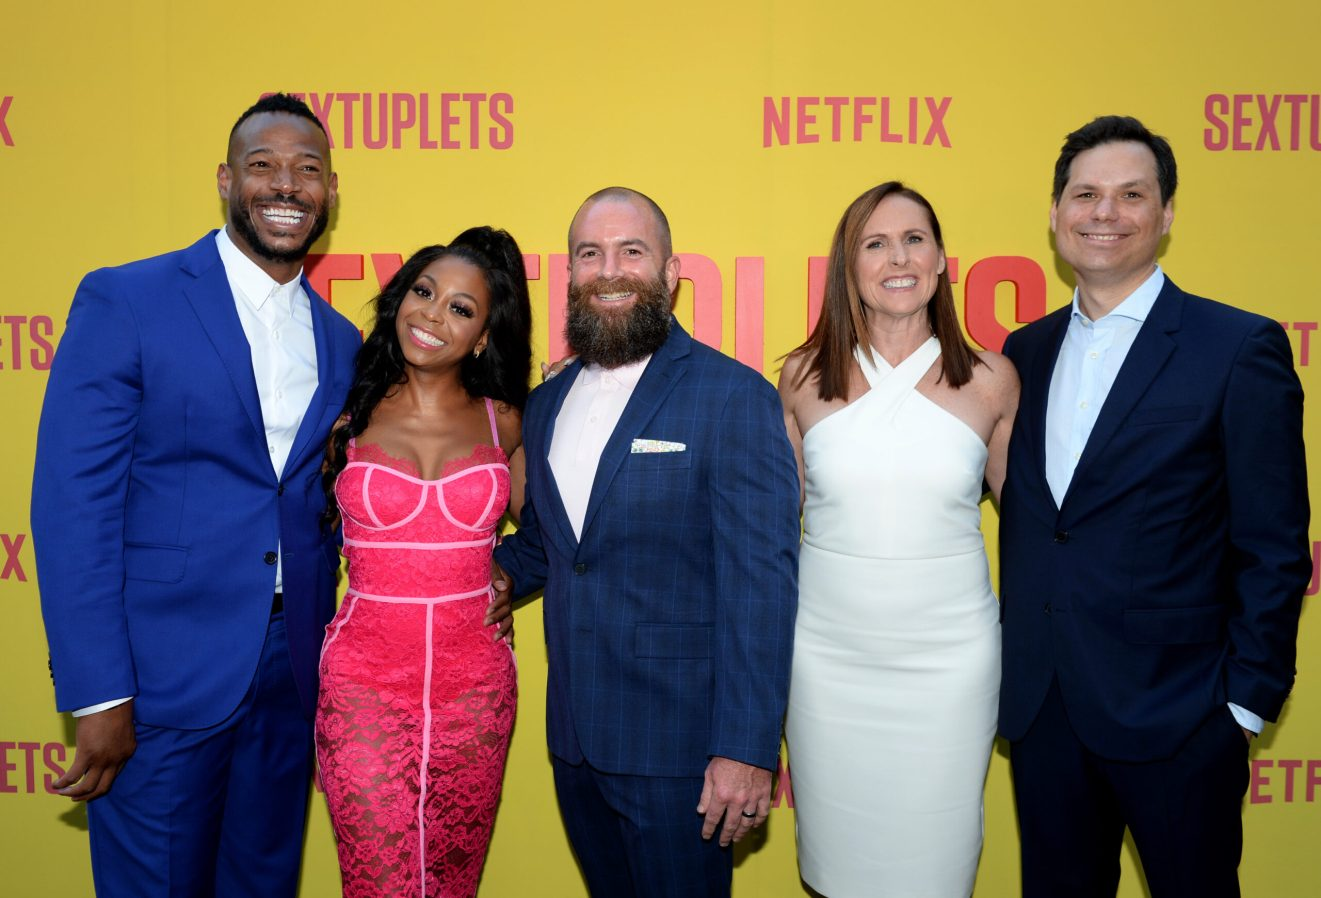 HOLLYWOOD, CALIFORNIA - AUGUST 07: Marlon Wayans, Bresha Webb, Michael Tiddes, Molly Shannon and Michael Ian Black attend the Netflix World Premiere Of 'SEXTUPLETS' at The Arclight Hollywood on August 07, 2019 in Hollywood, California. (Photo by Andrew Toth/Getty Images for Netflix)